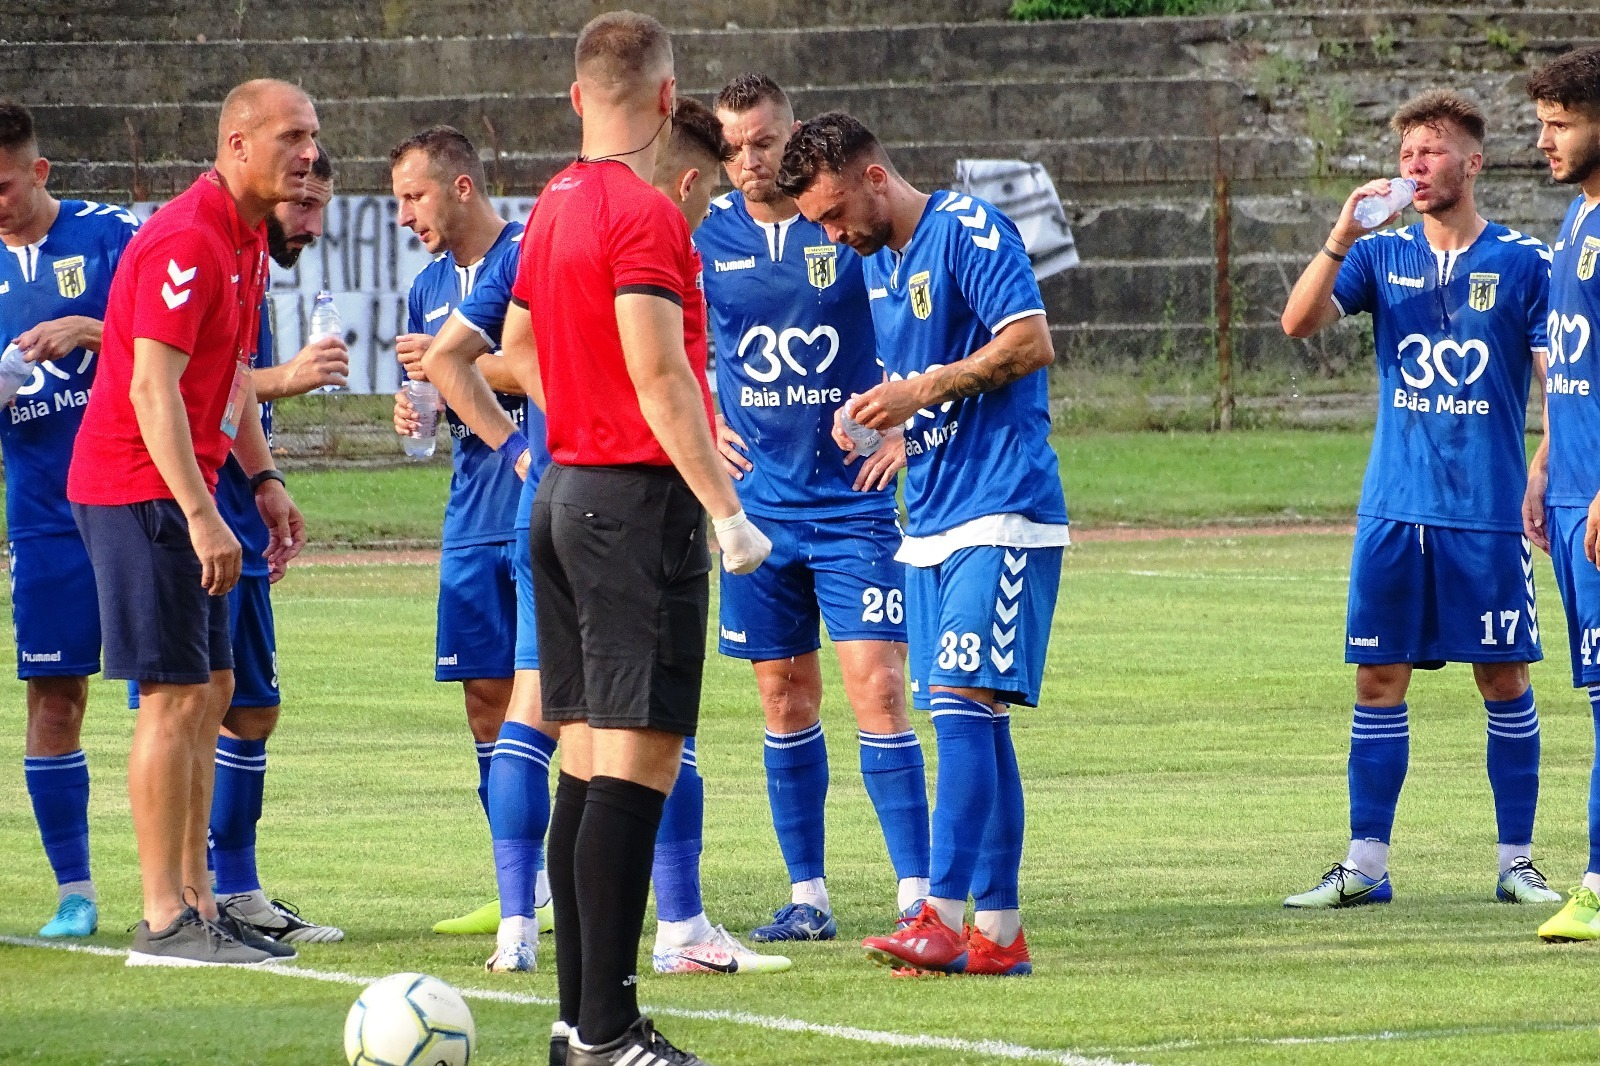 The latest news from Comuna Recea: squad, results, table  |Comuna Recea